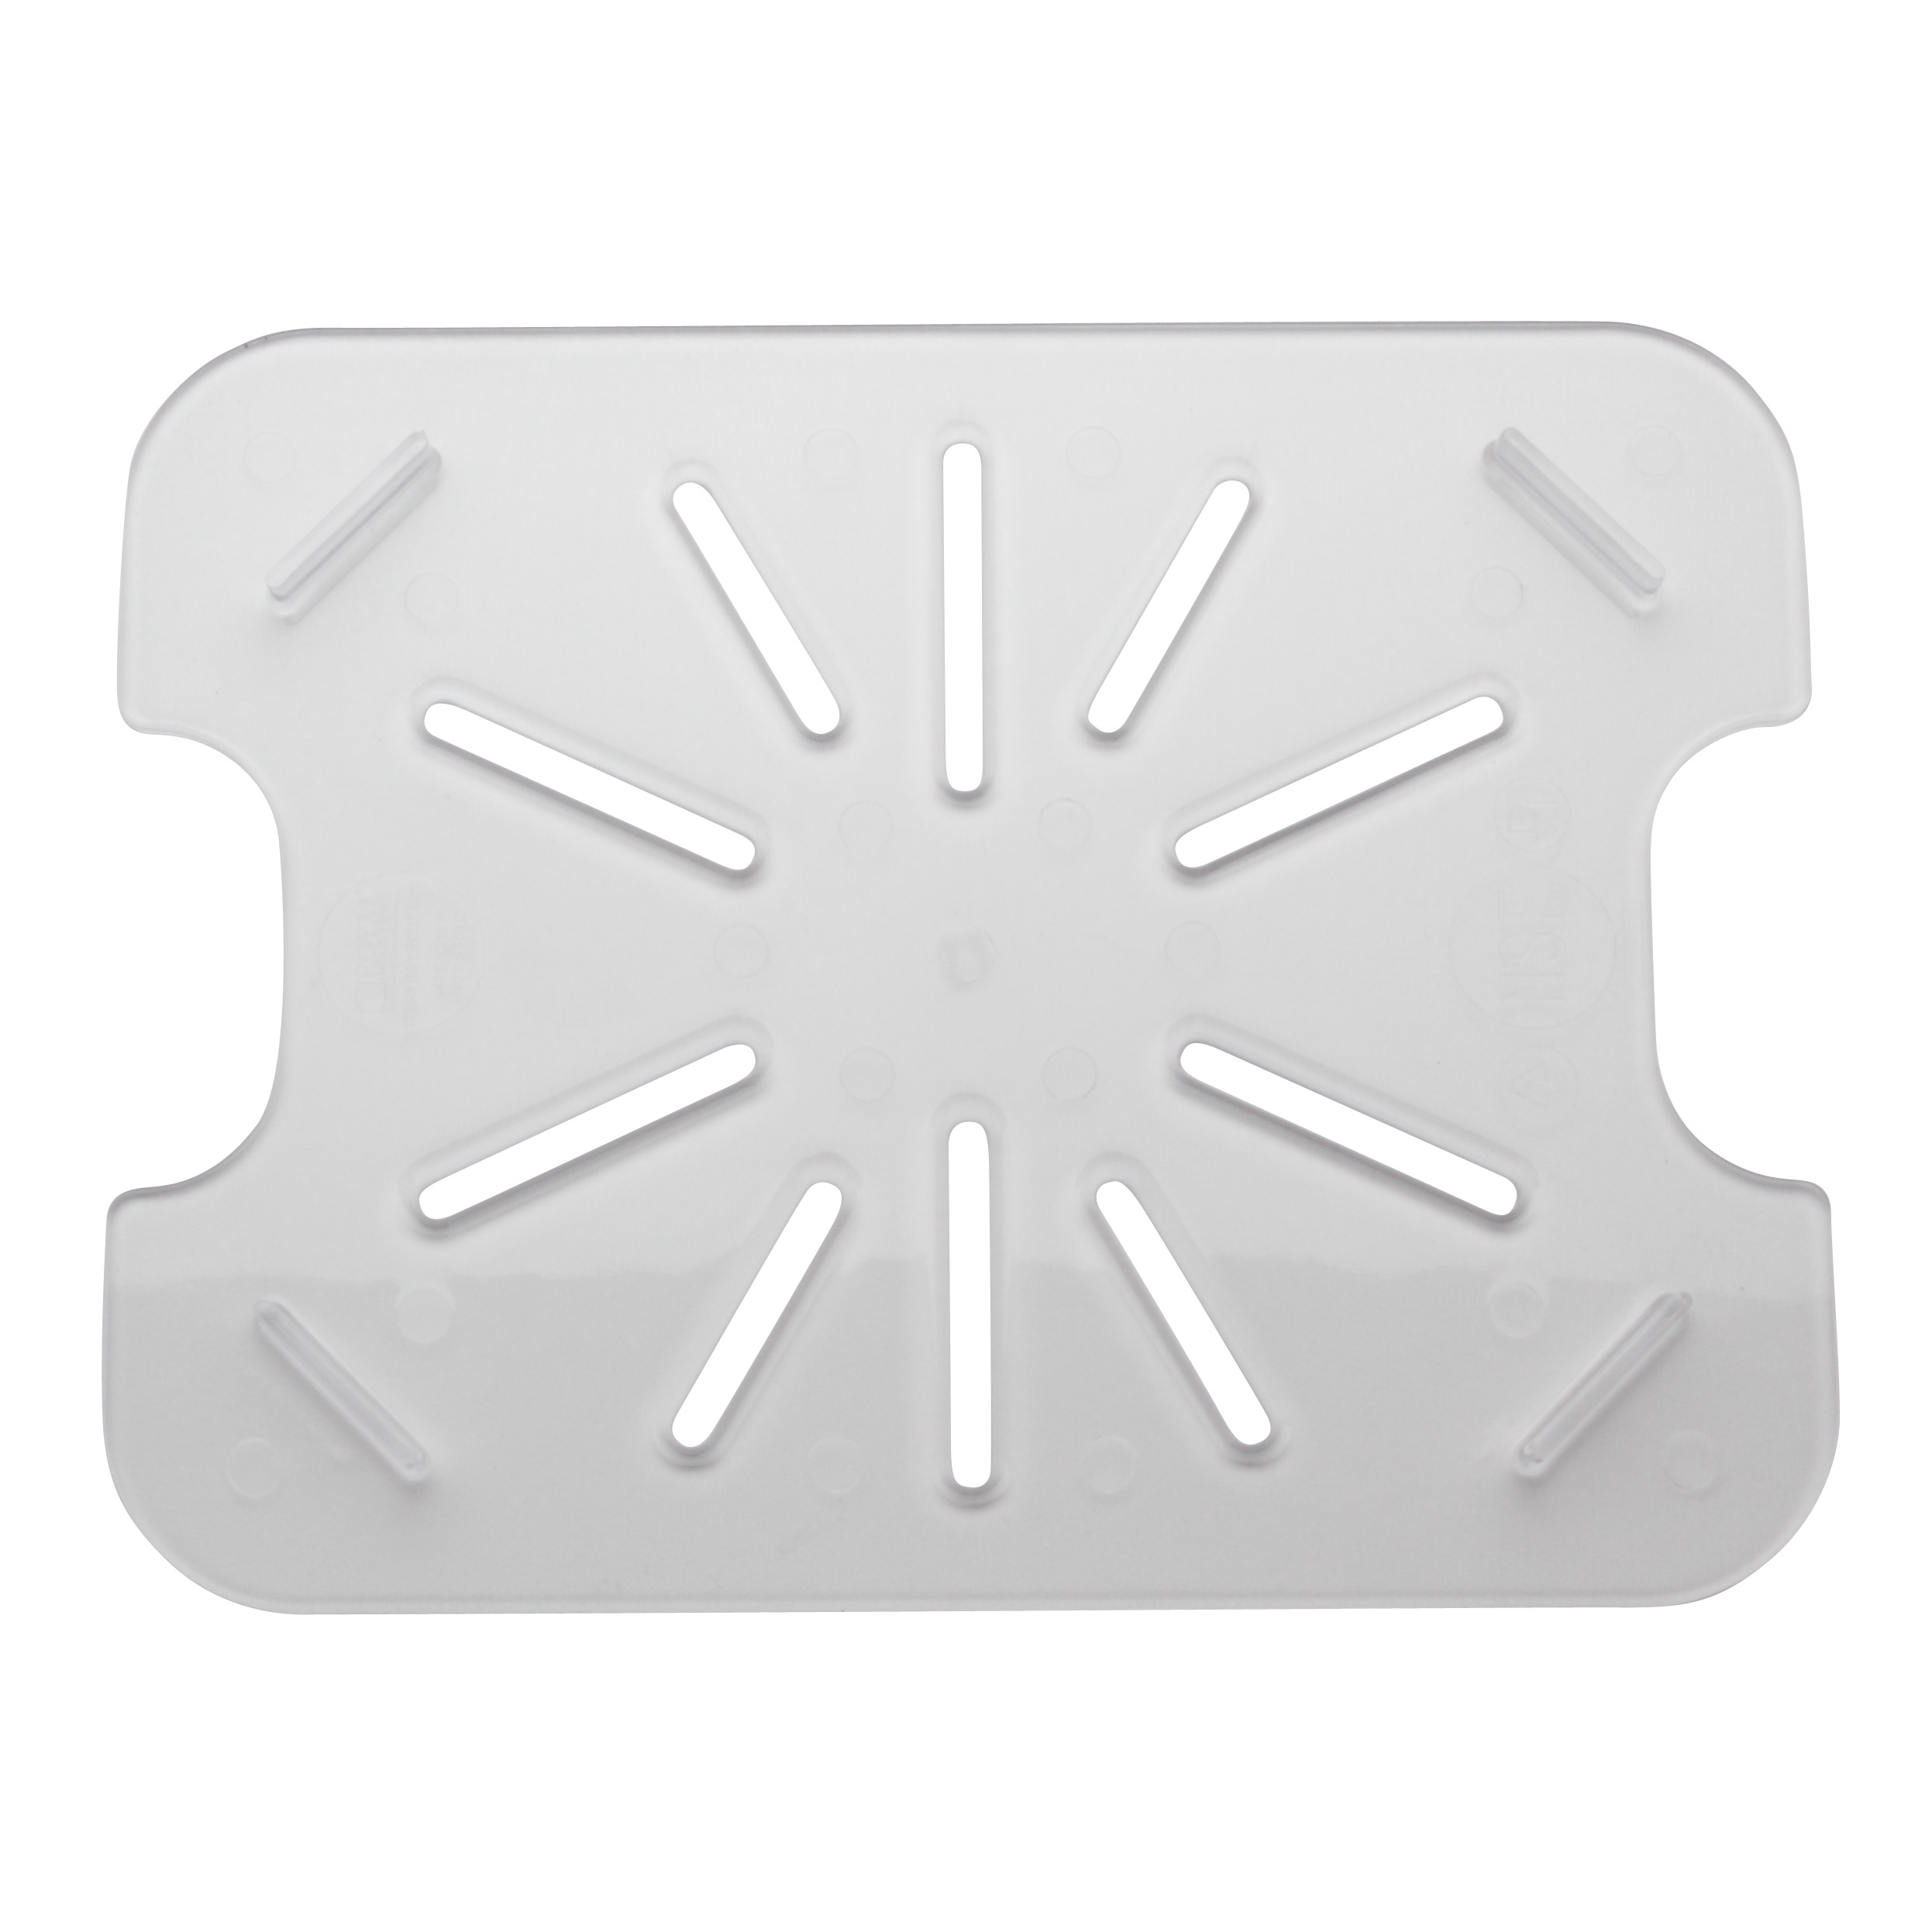 Royal Industries ROY PCDT 1200 food pan drain tray